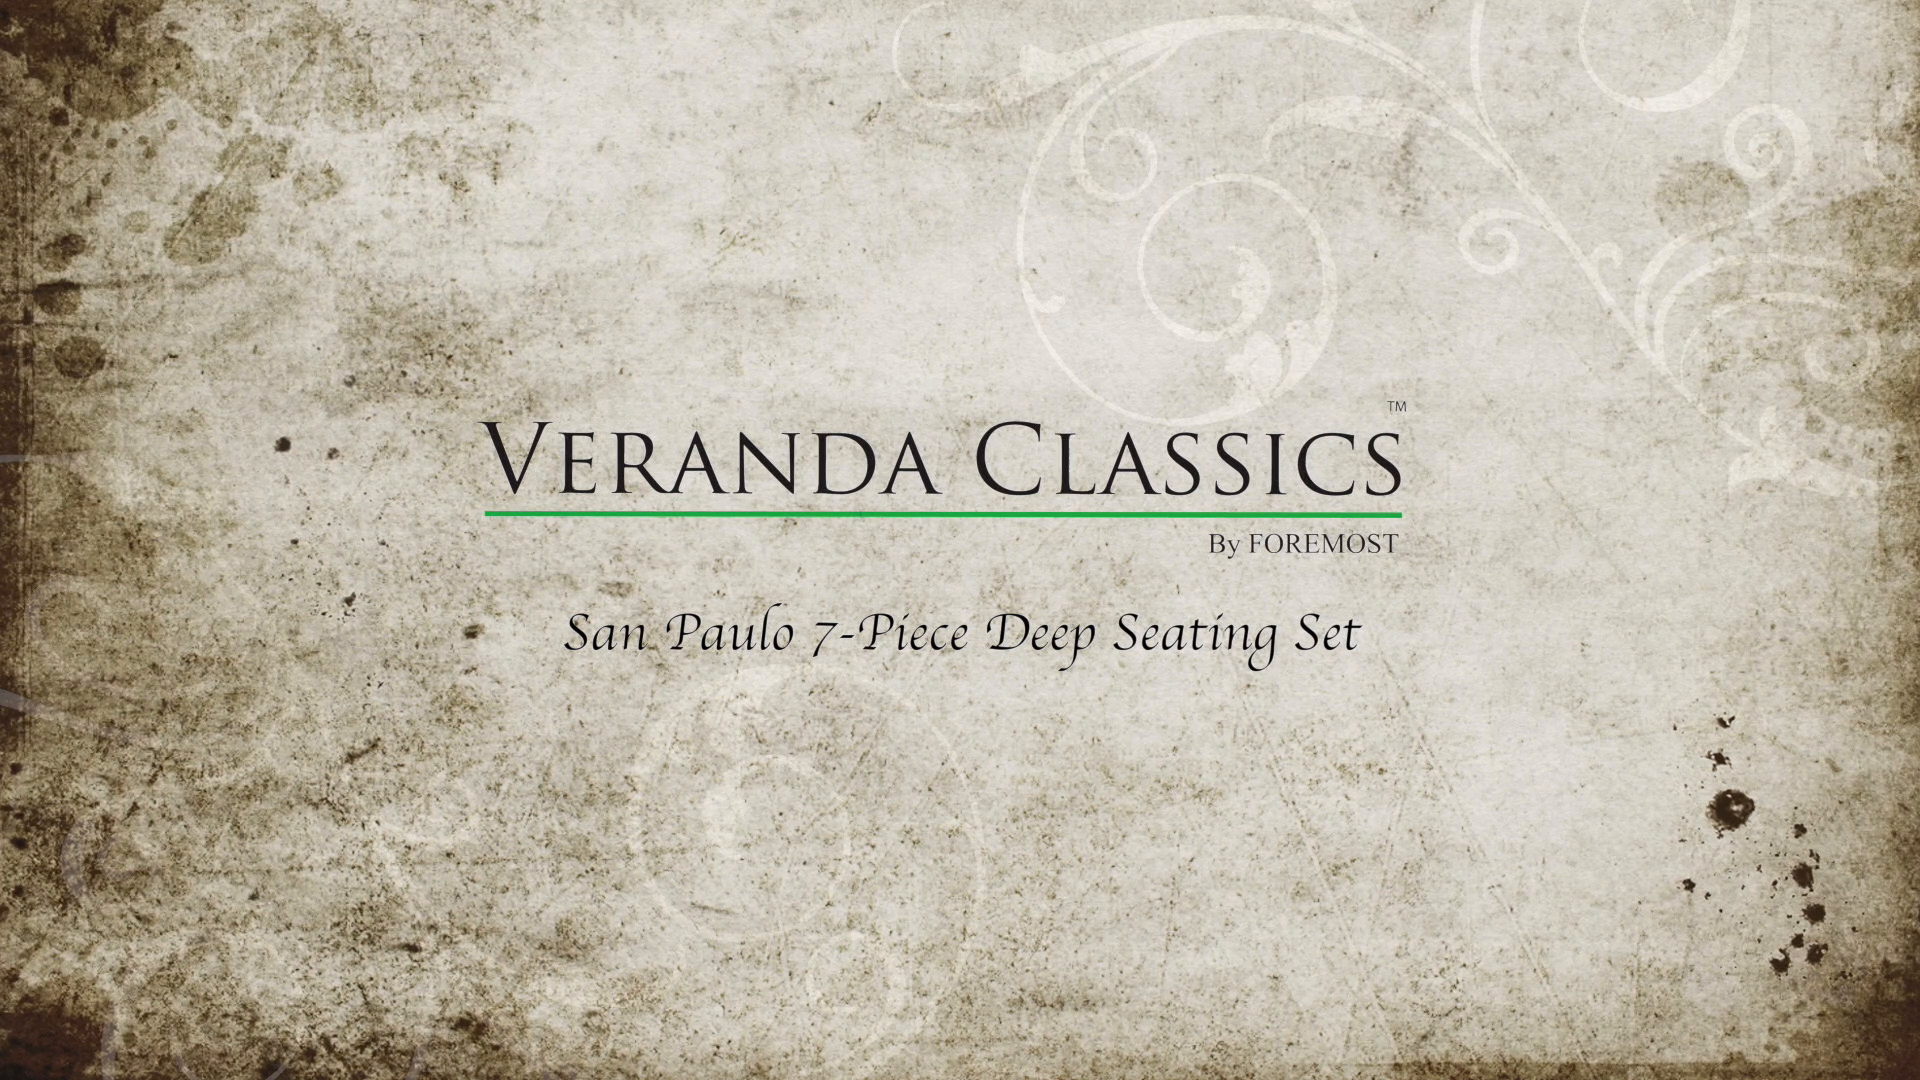 Collection Veranda Classics Monte Cristo Www Topsimages Com